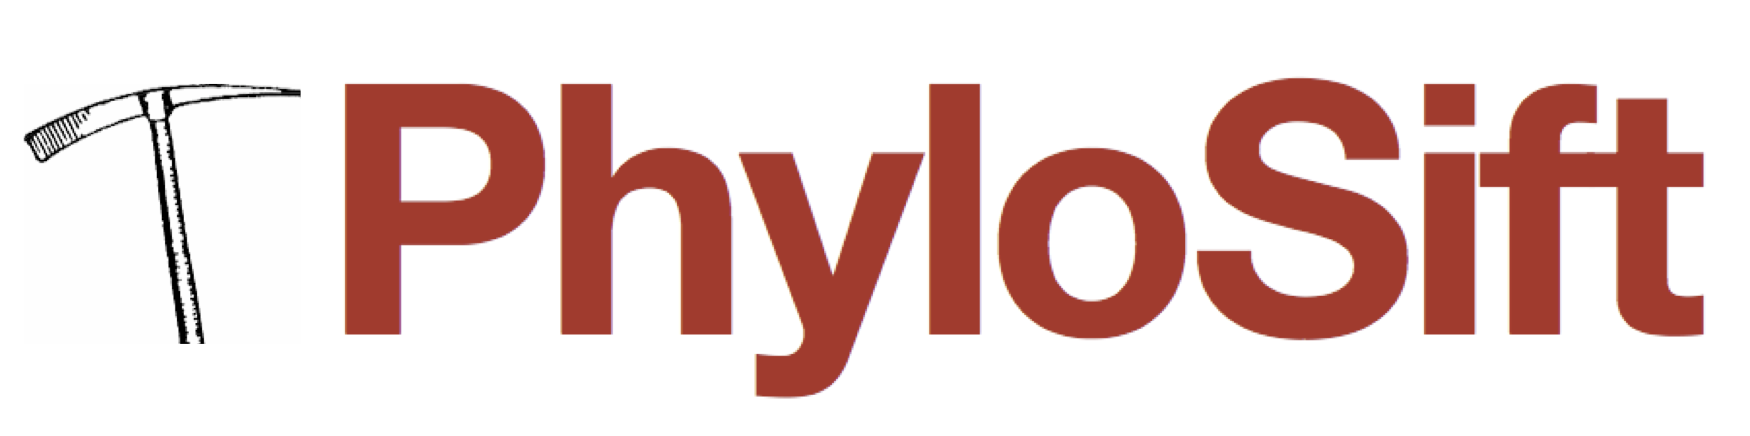 phylosift-logo.png